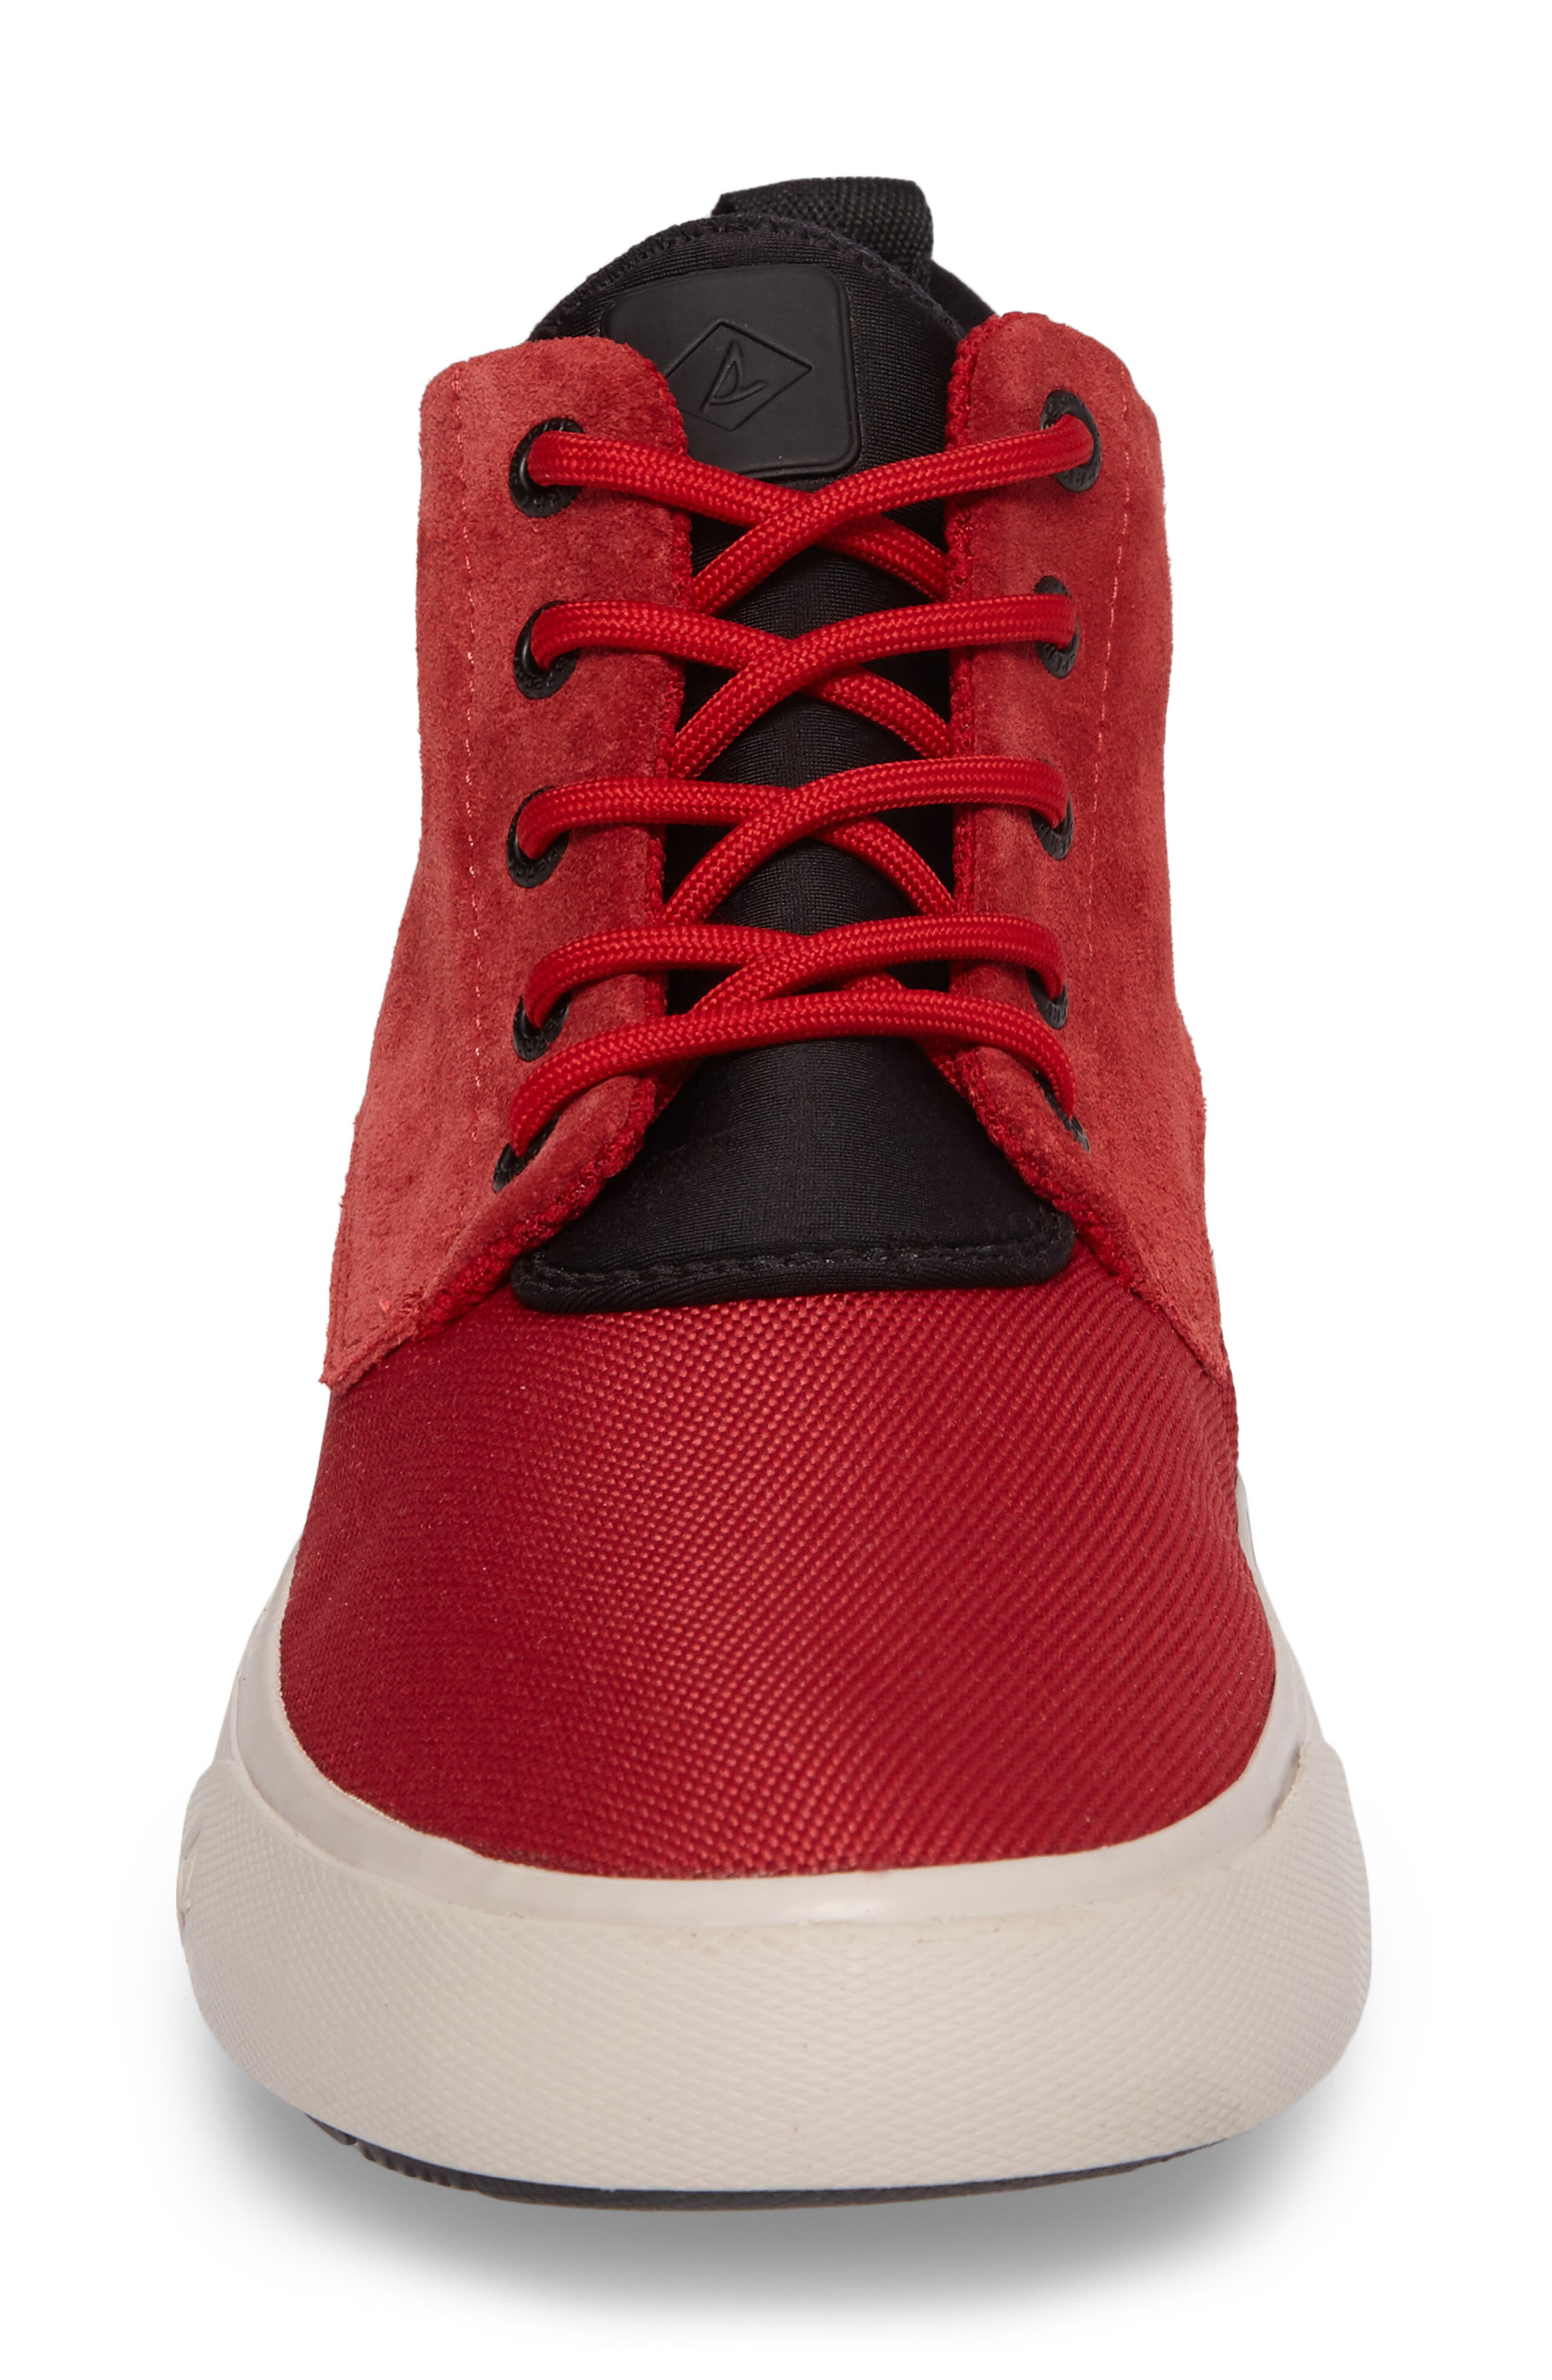 Cutwater Sneaker,                             Alternate thumbnail 4, color,                             Red